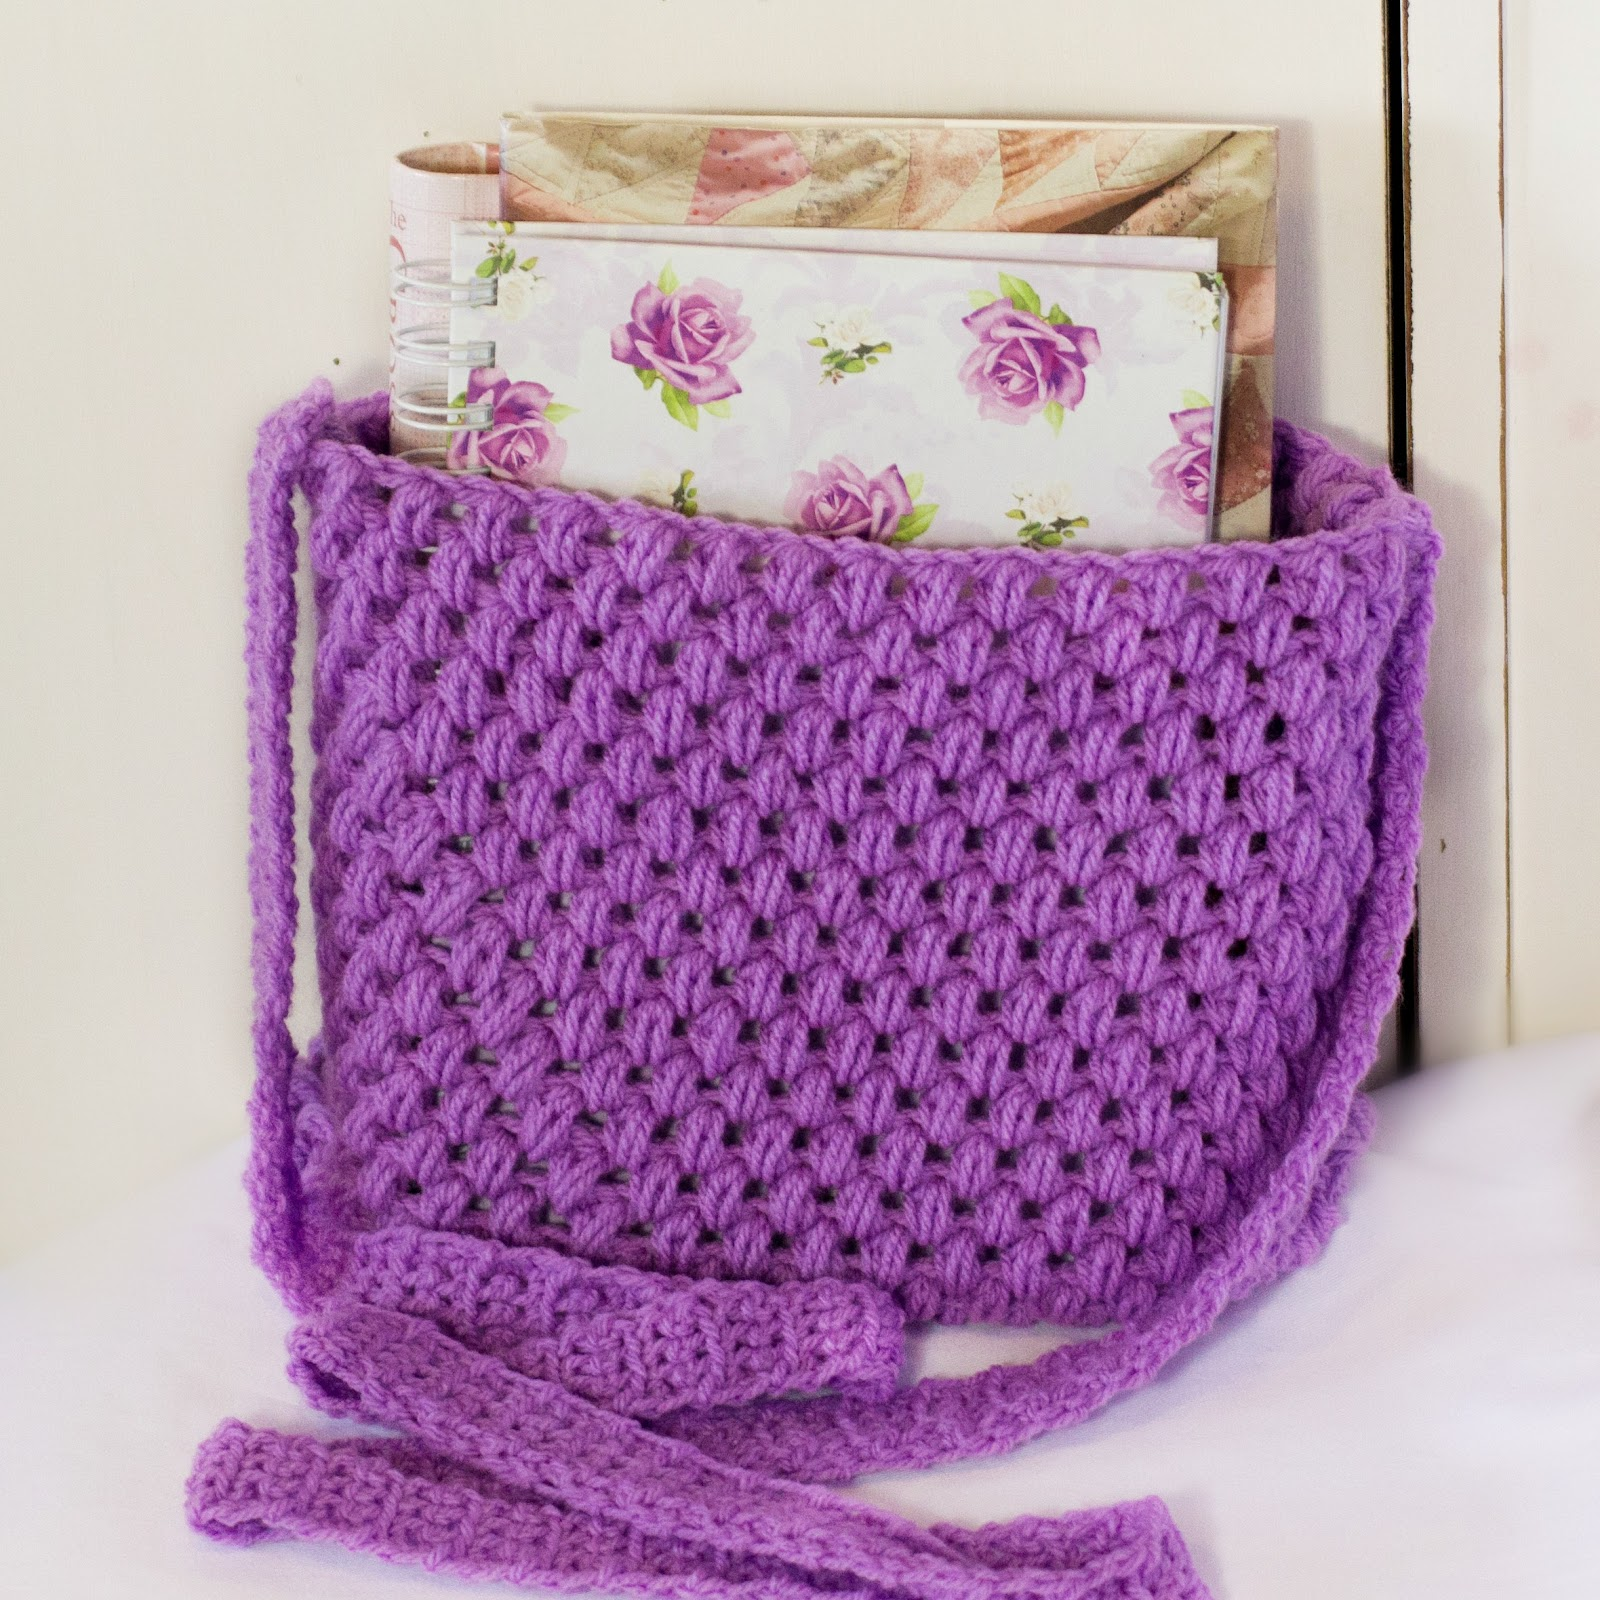 Free Crochet Bag : ... Craft, Crochet, Create: Out and About ~ Easy Tote Bag Crochet Pattern